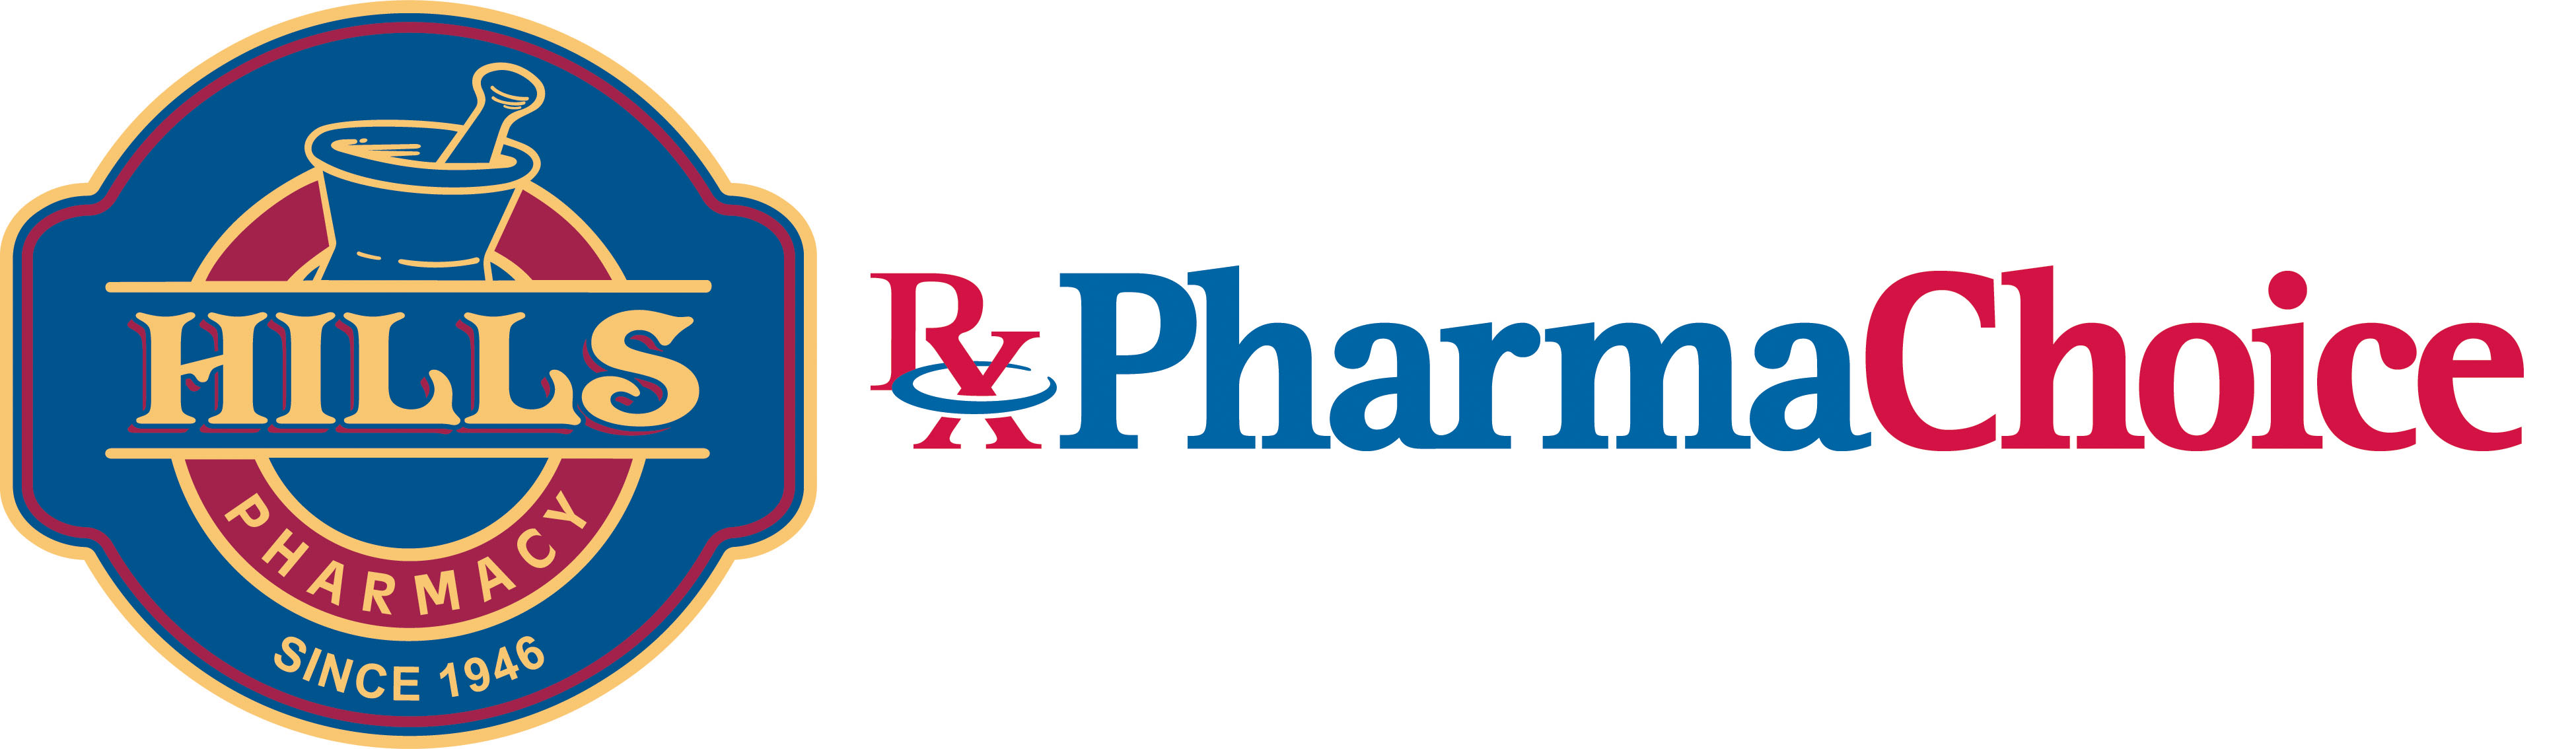 Hills-Pharmacy-LogoPharma